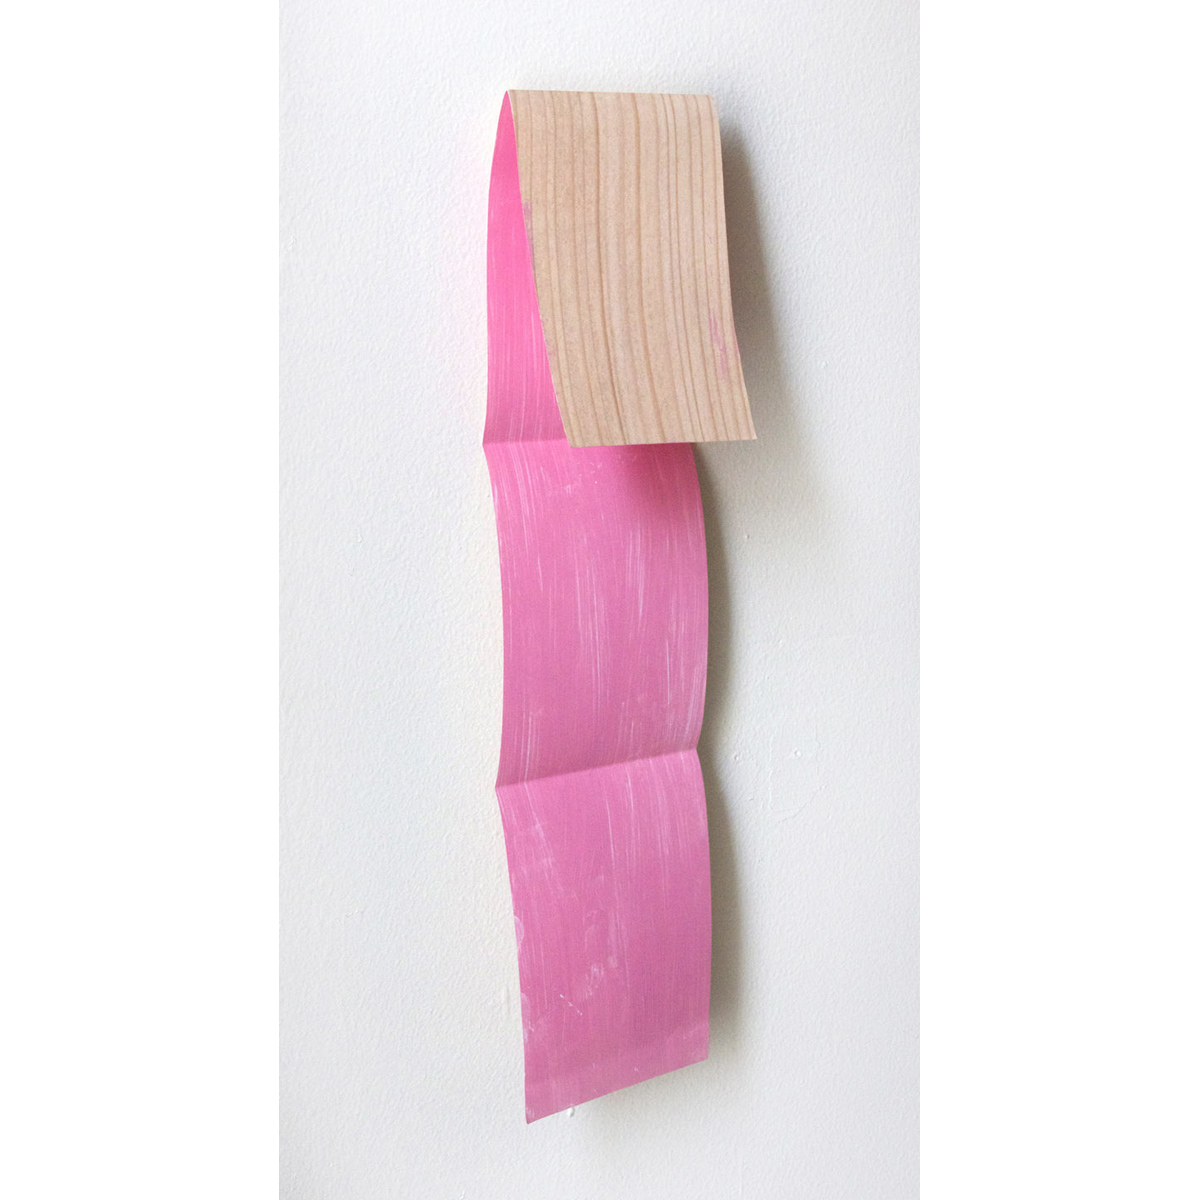 pink and wood copy.jpg